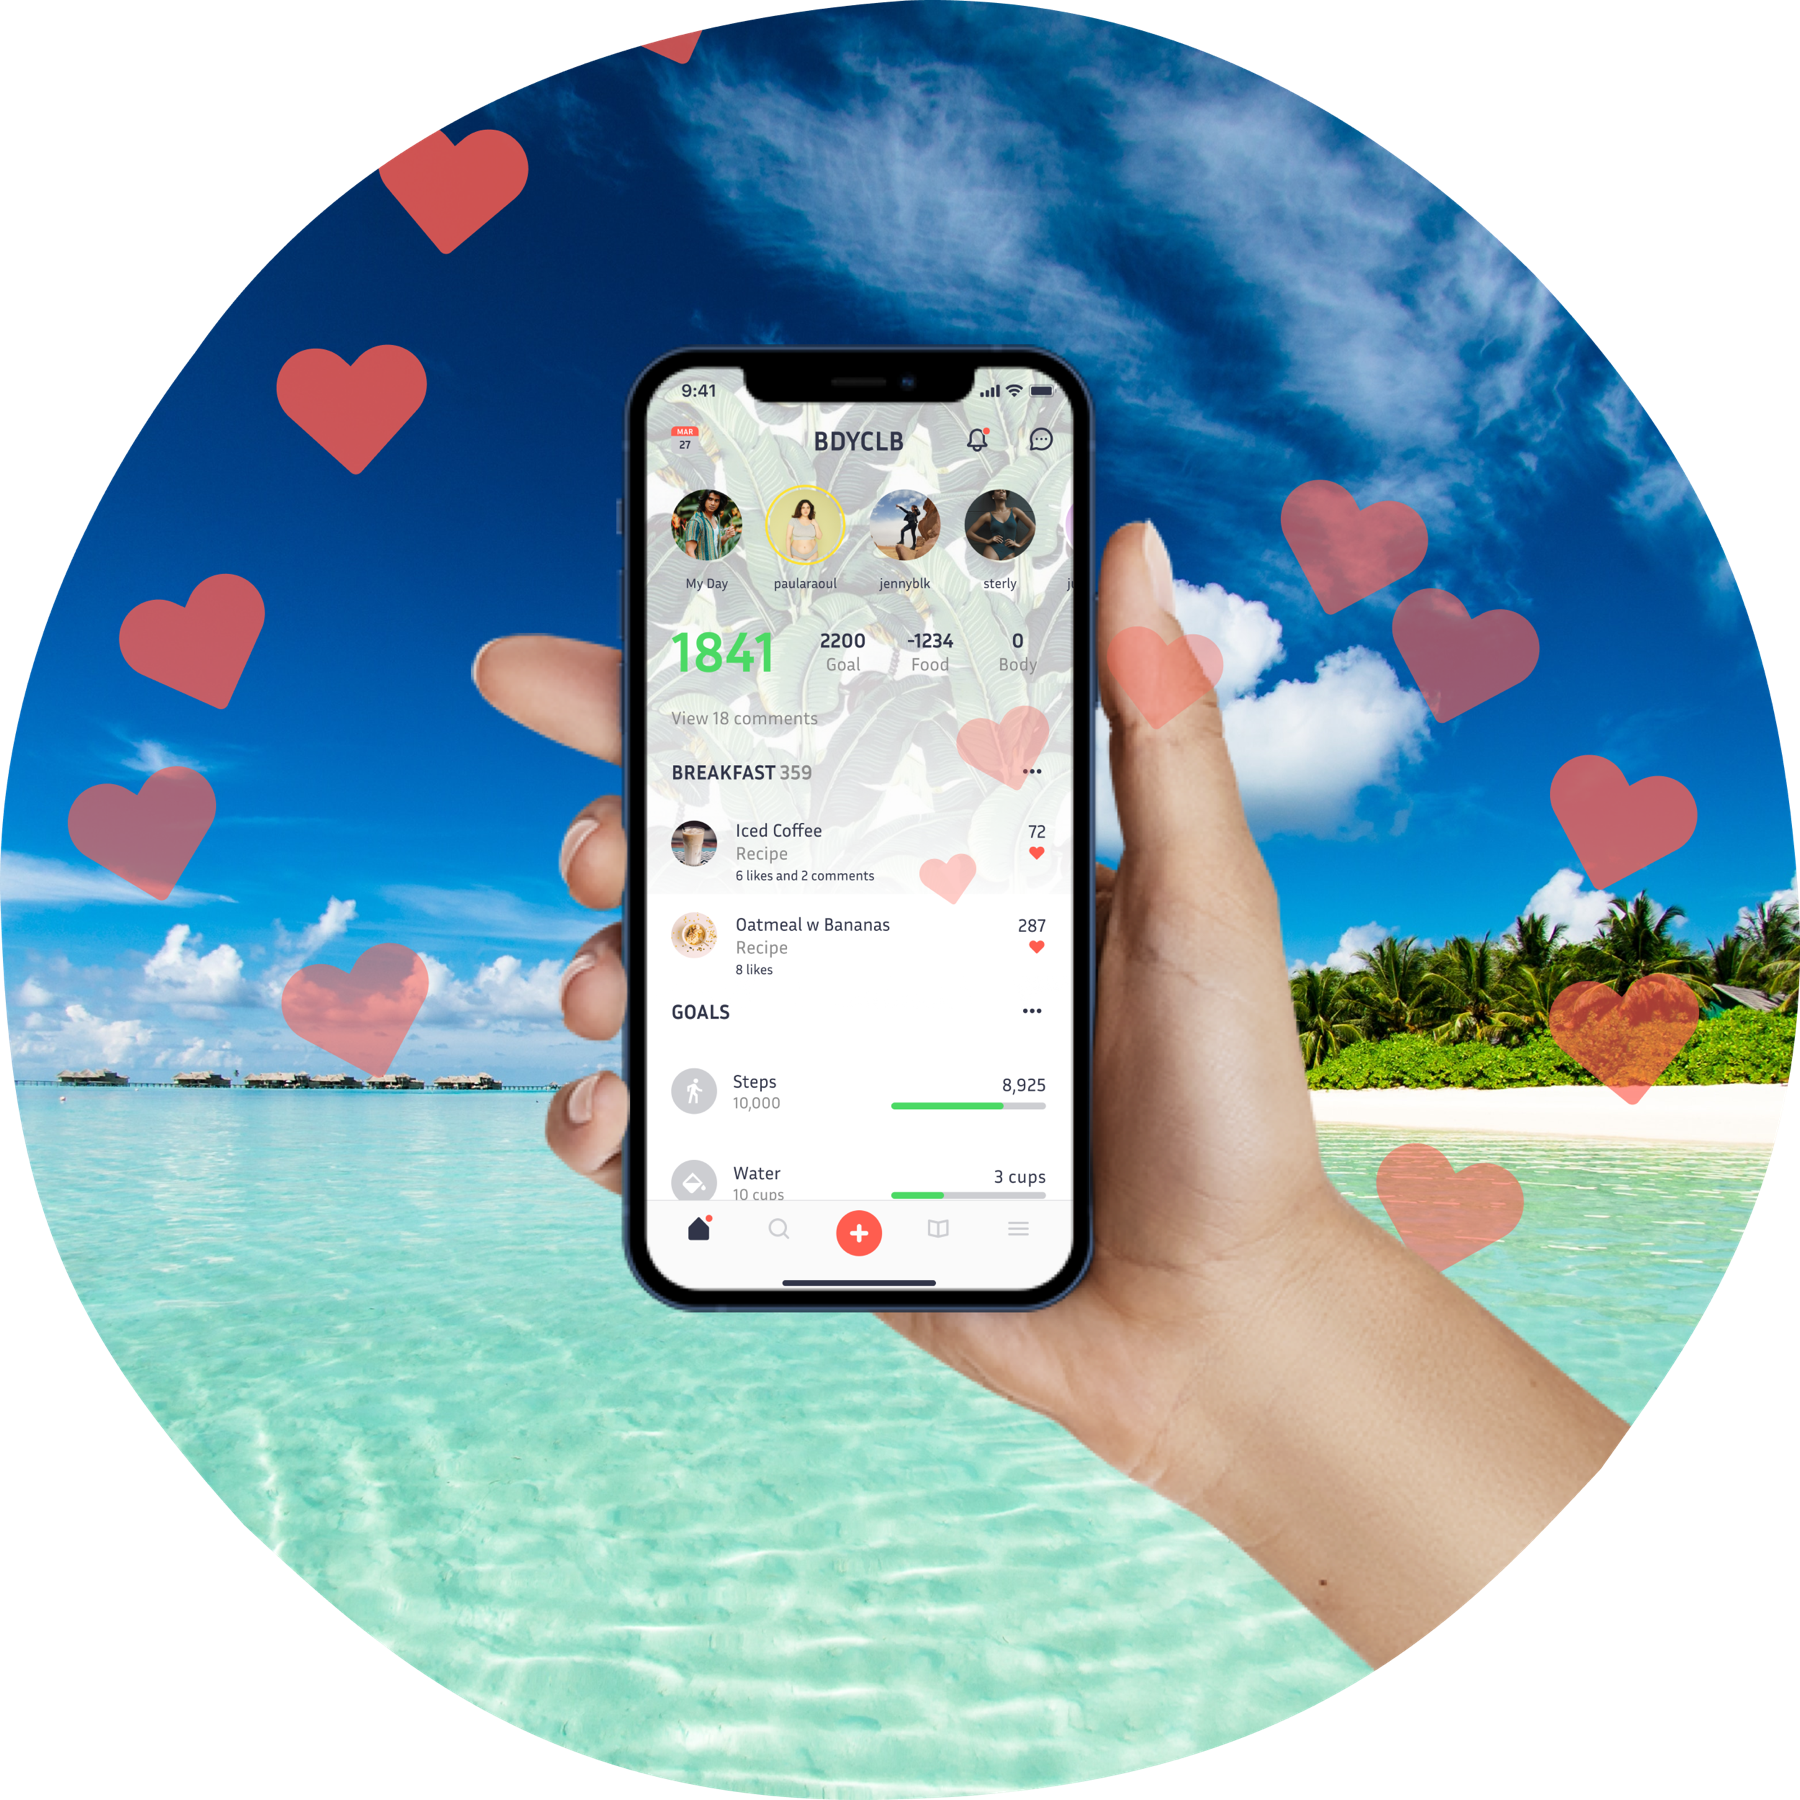 Picture of someone's hand holding a smartphone. The app open on the phone looks insane and hearts are exploding out of it, if that makes sense.